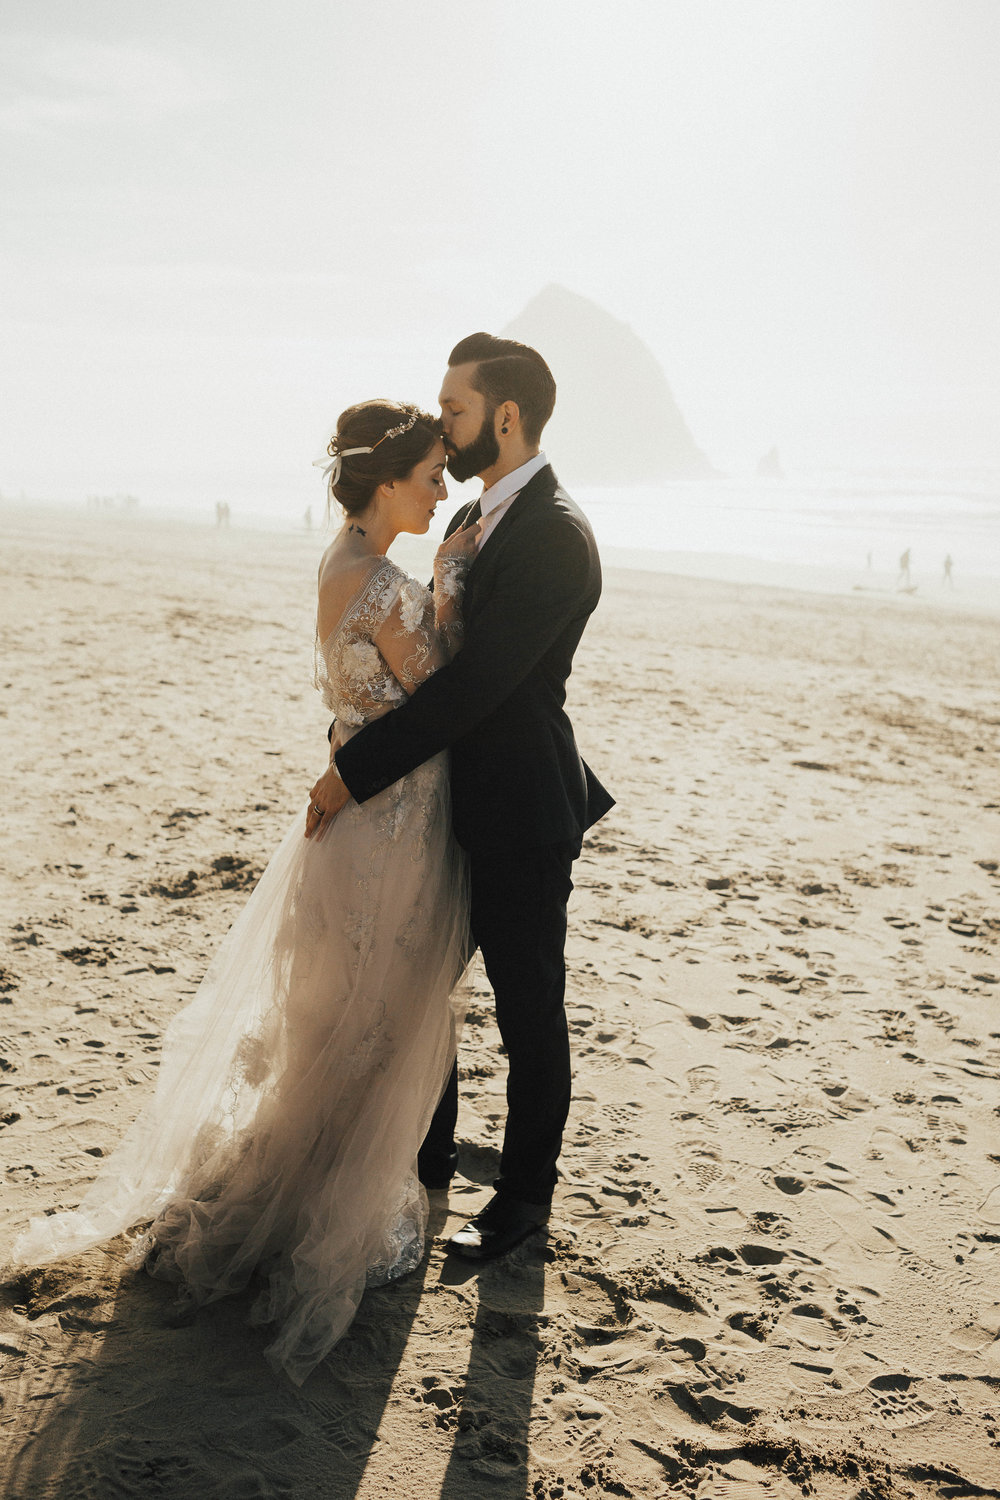 Cannon Beach Elopement - Michelle Larmand Photography - 041